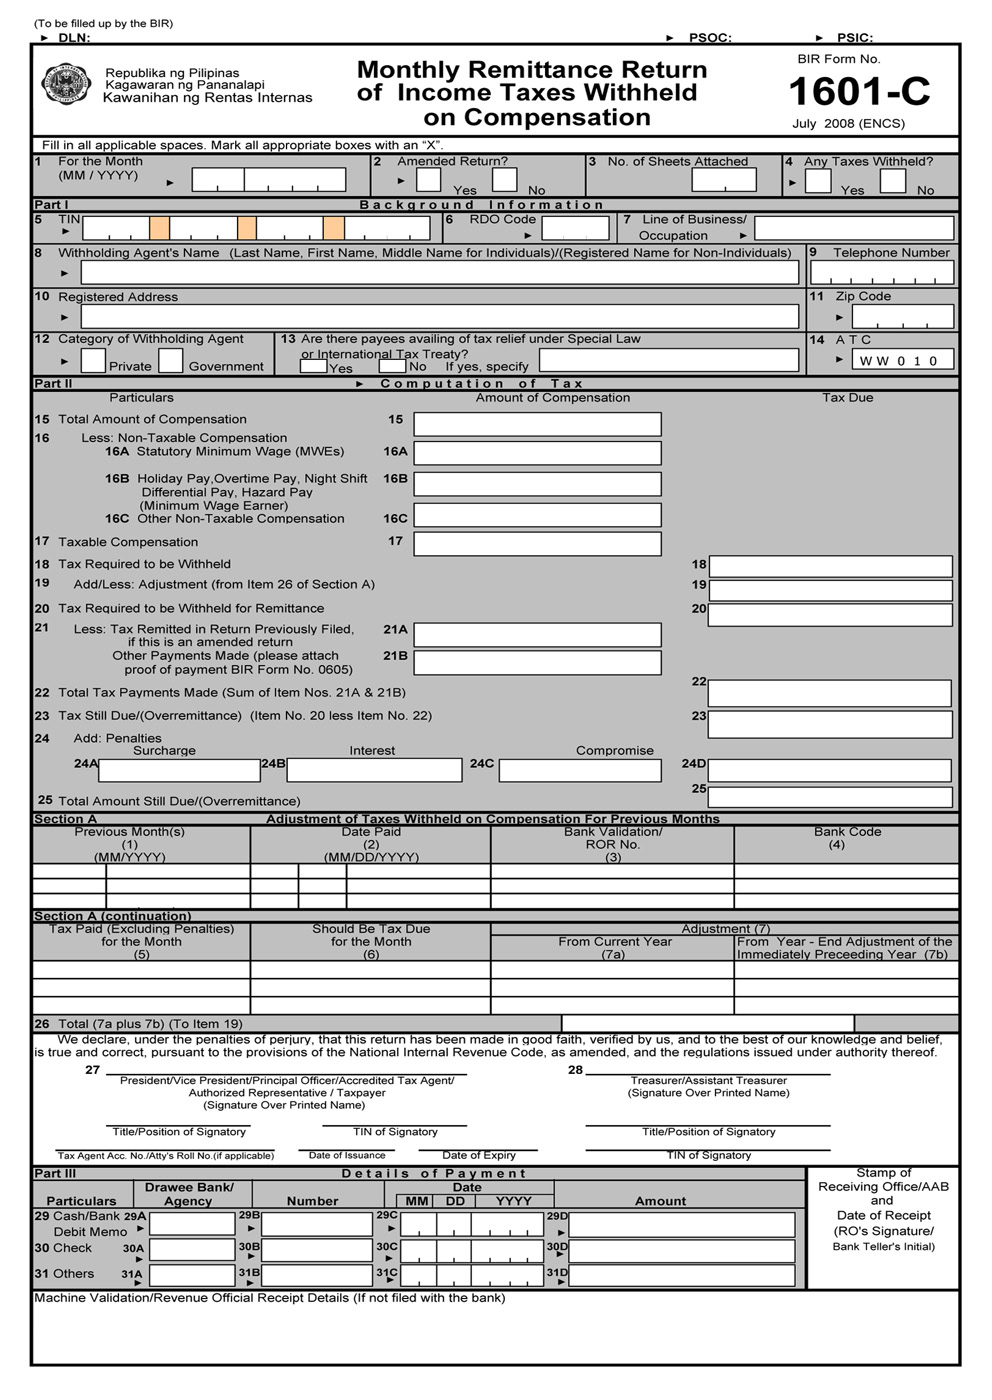 income tax return instructions